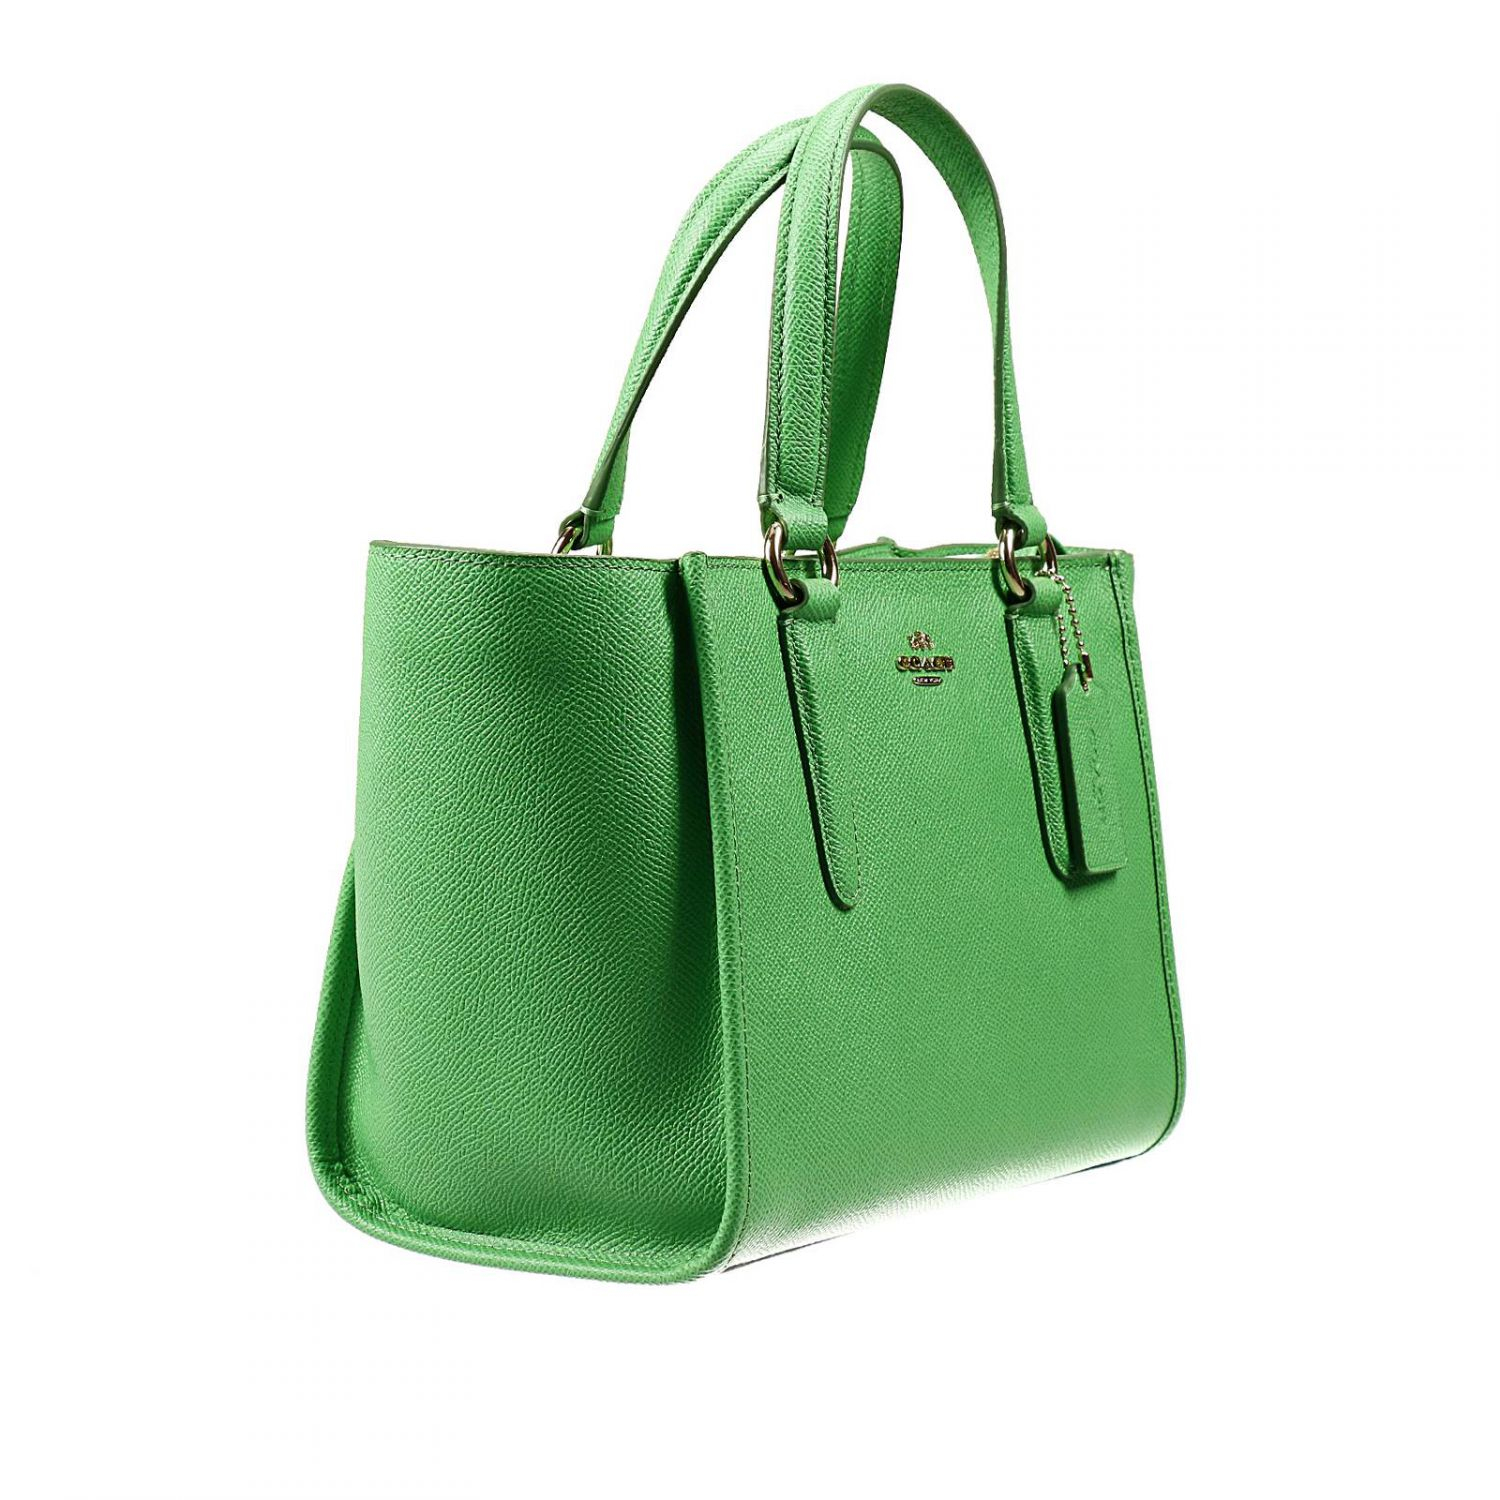 779de01117 ... where can i buy lyst coach handbag bag mini crossbe carryall shopping  leather in green 967f1